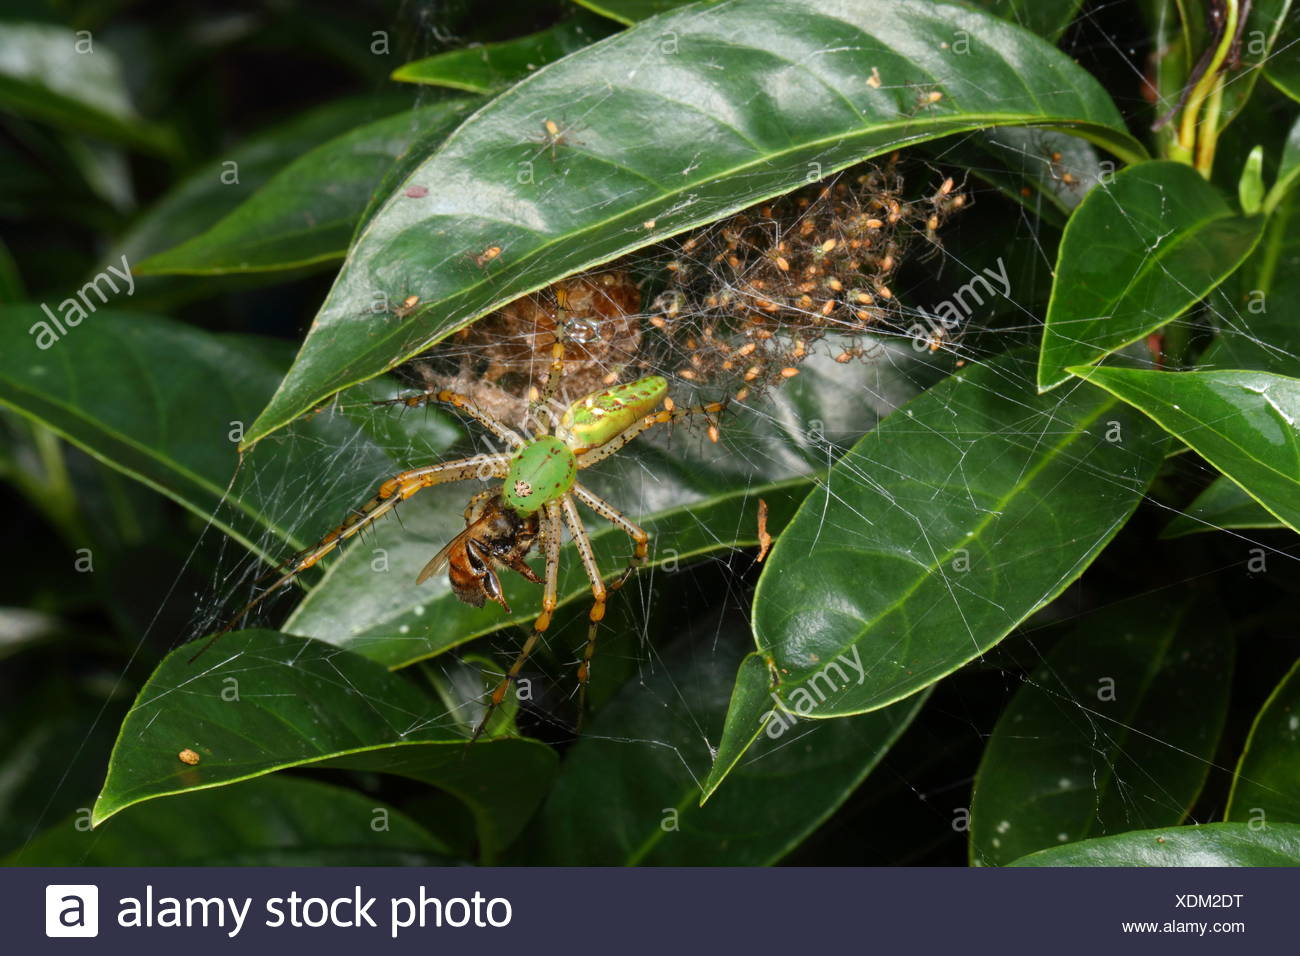 A green lynx spider with babies, Peucetia viridans, preying on a honey bee. Stock Photo